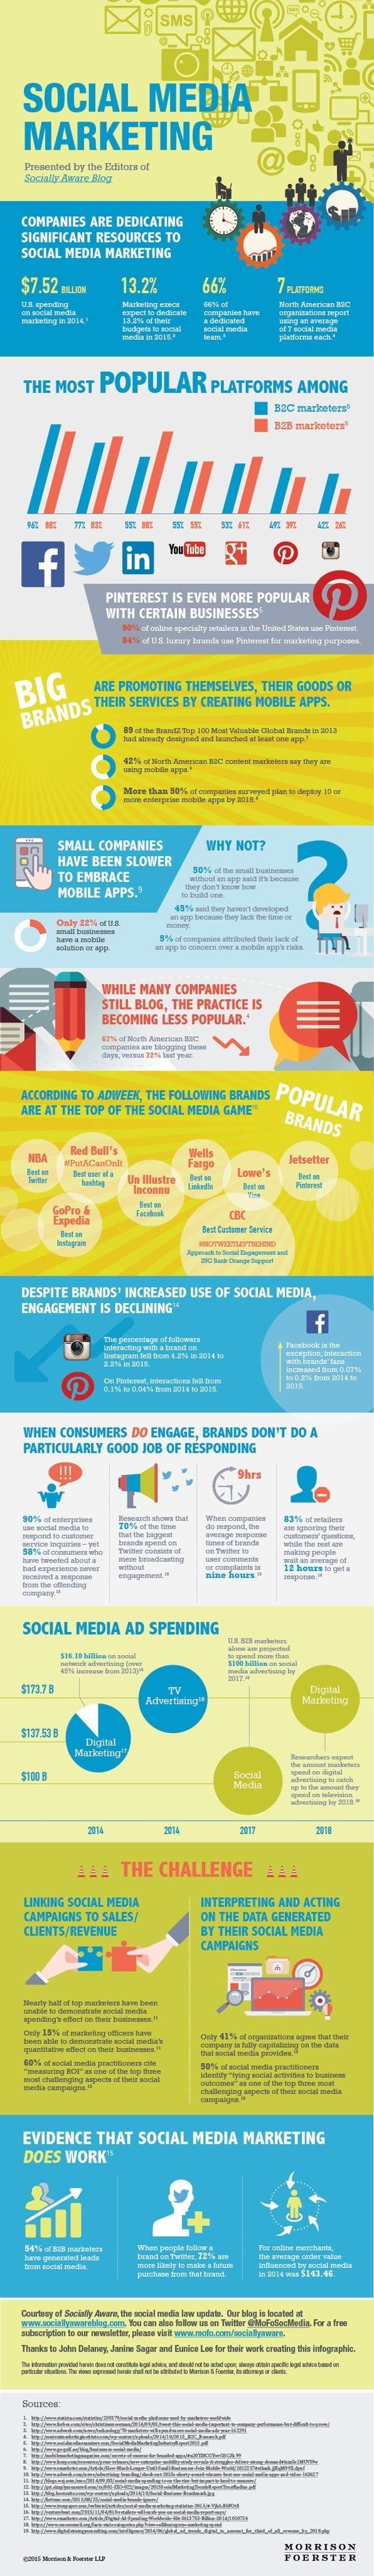 By 2017, brands will spend hundreds of billions on their social, but many of them are still seeing low engagement.